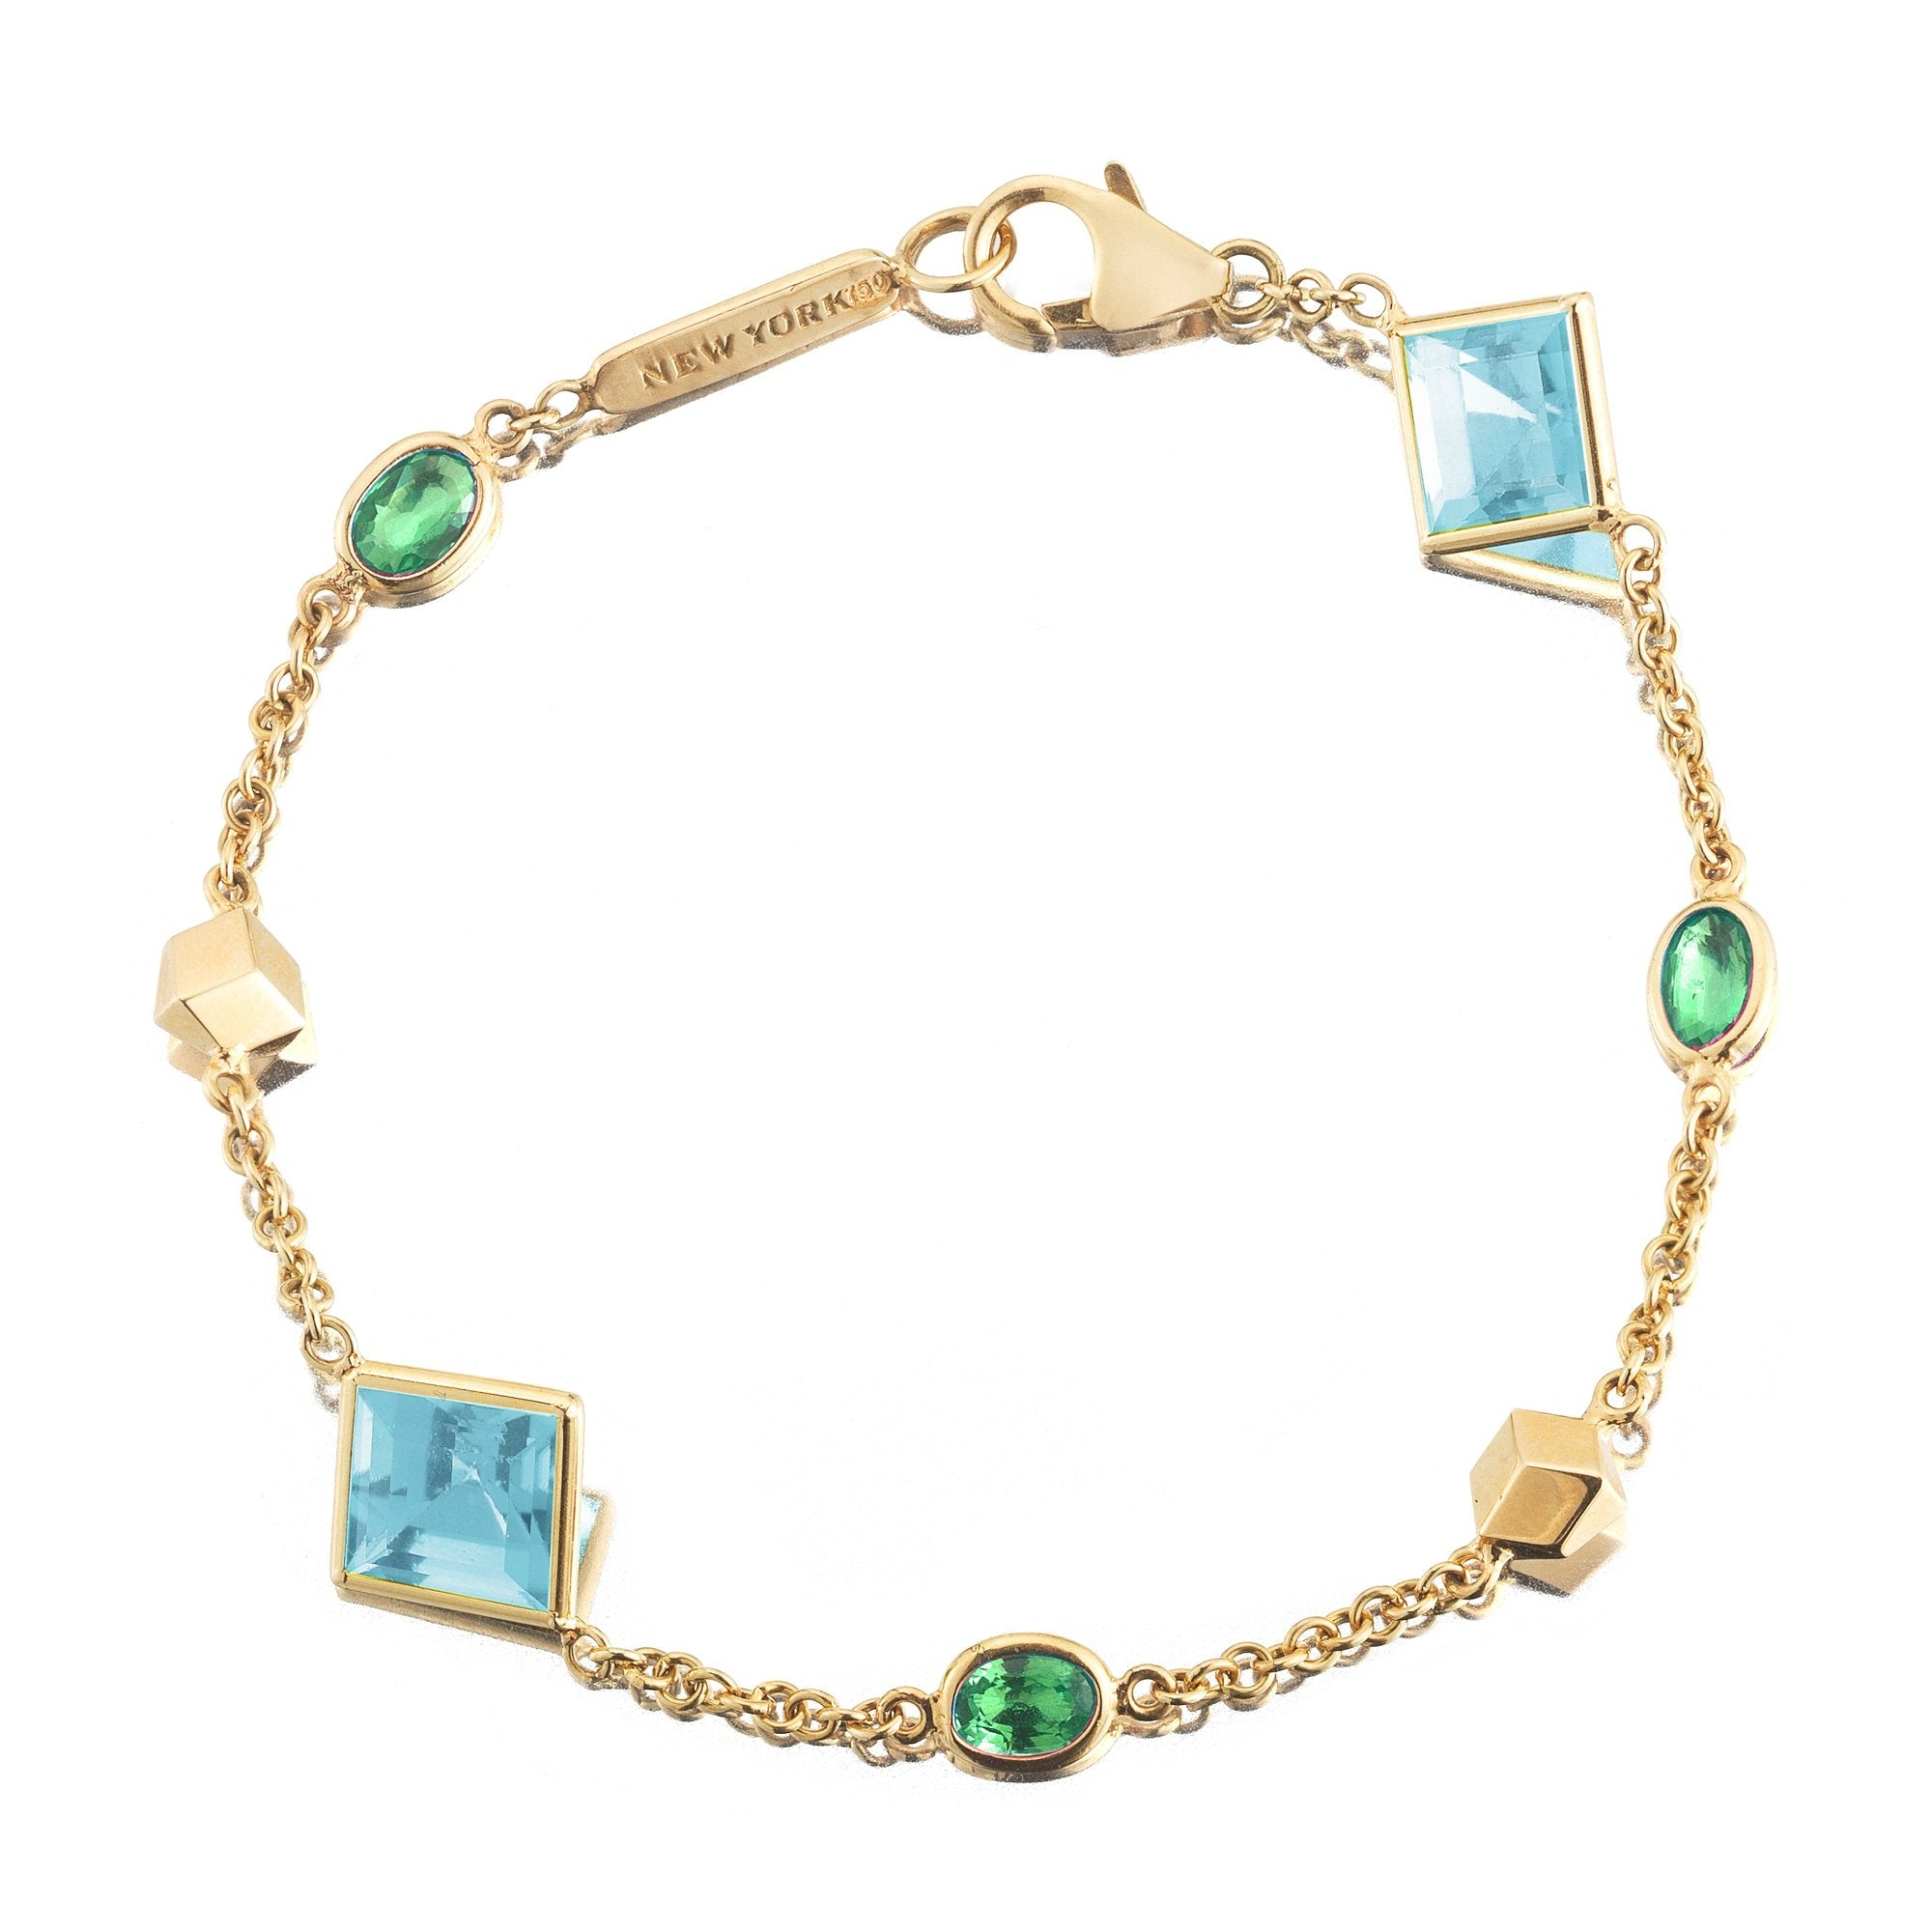 Blue Topaz and Tsavorite 'Florentine' Station Bracelet - Paolo Costagli